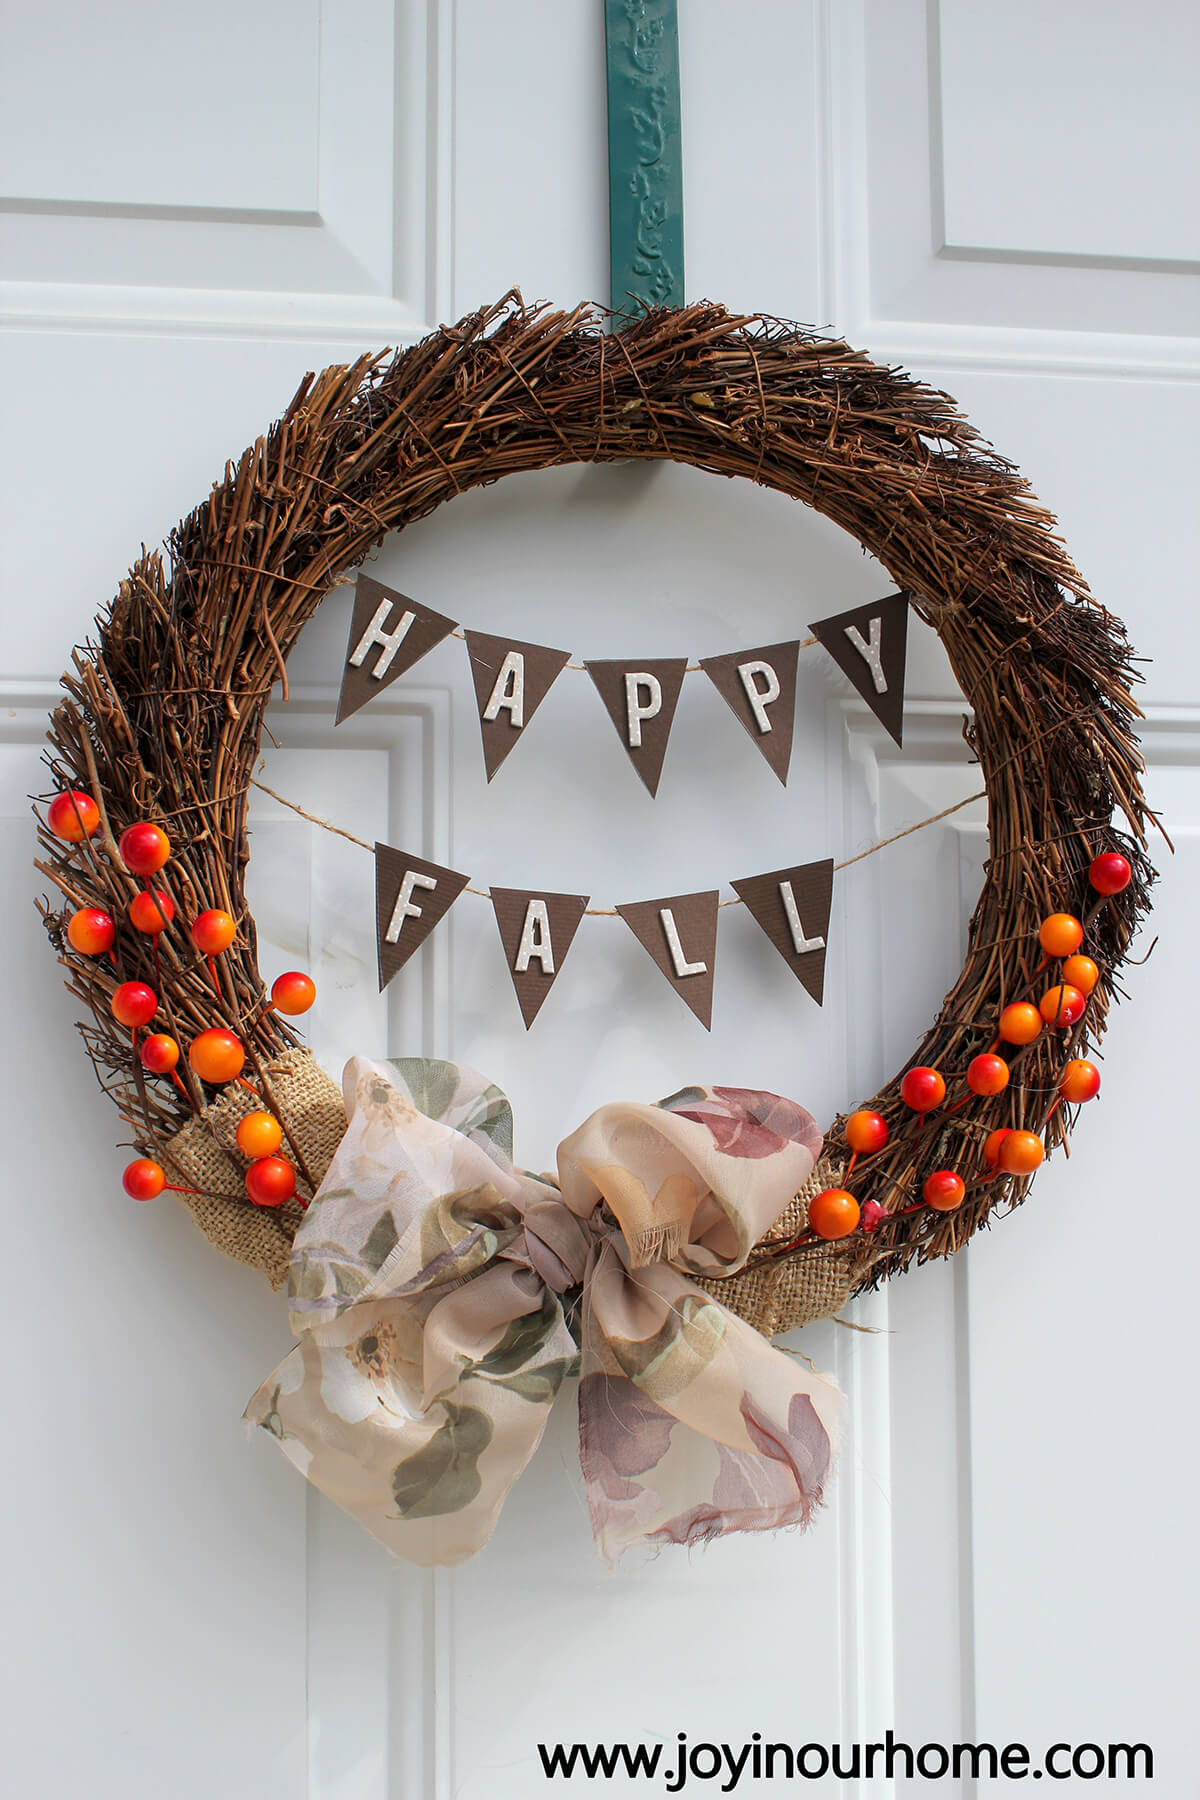 A Happy Fall Wreath Just for You